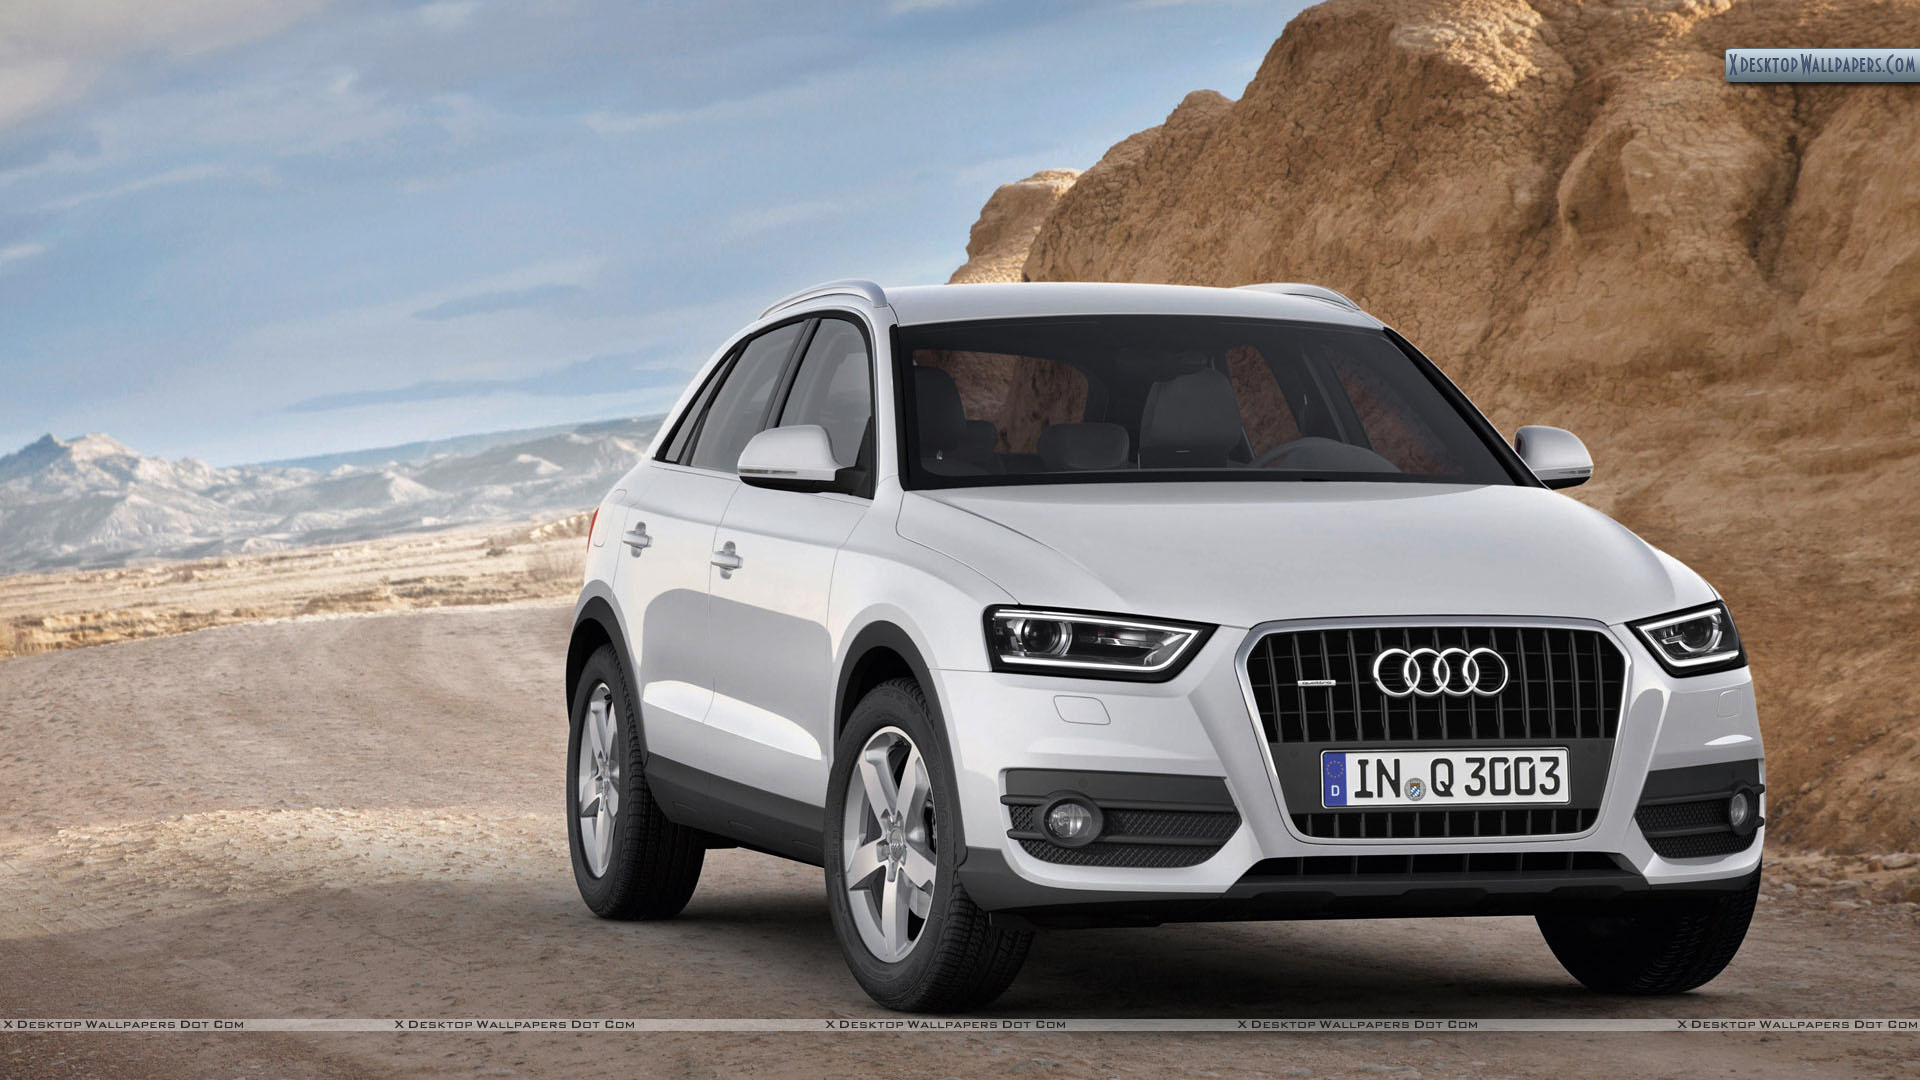 Audi Q3 in White Color Closeup Wallpaper 1920x1080